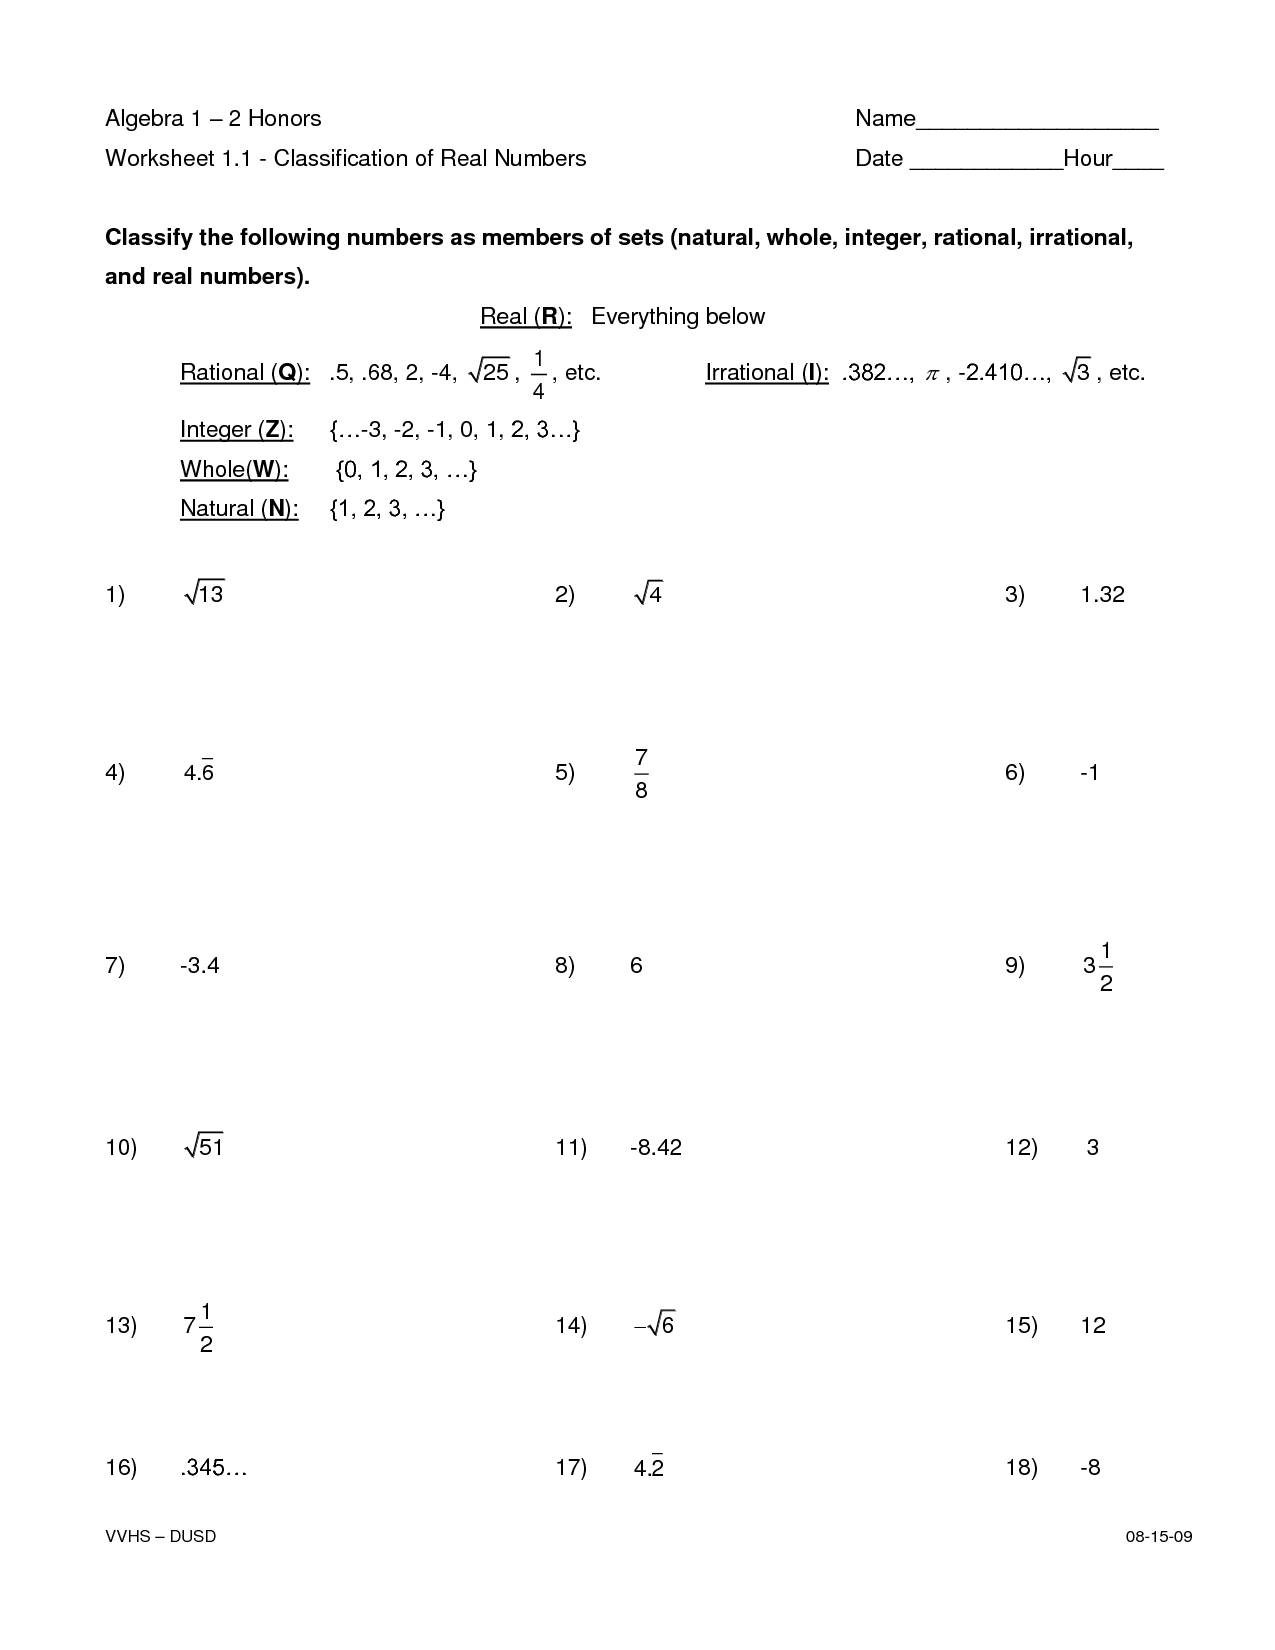 Classifying Stars Worksheet